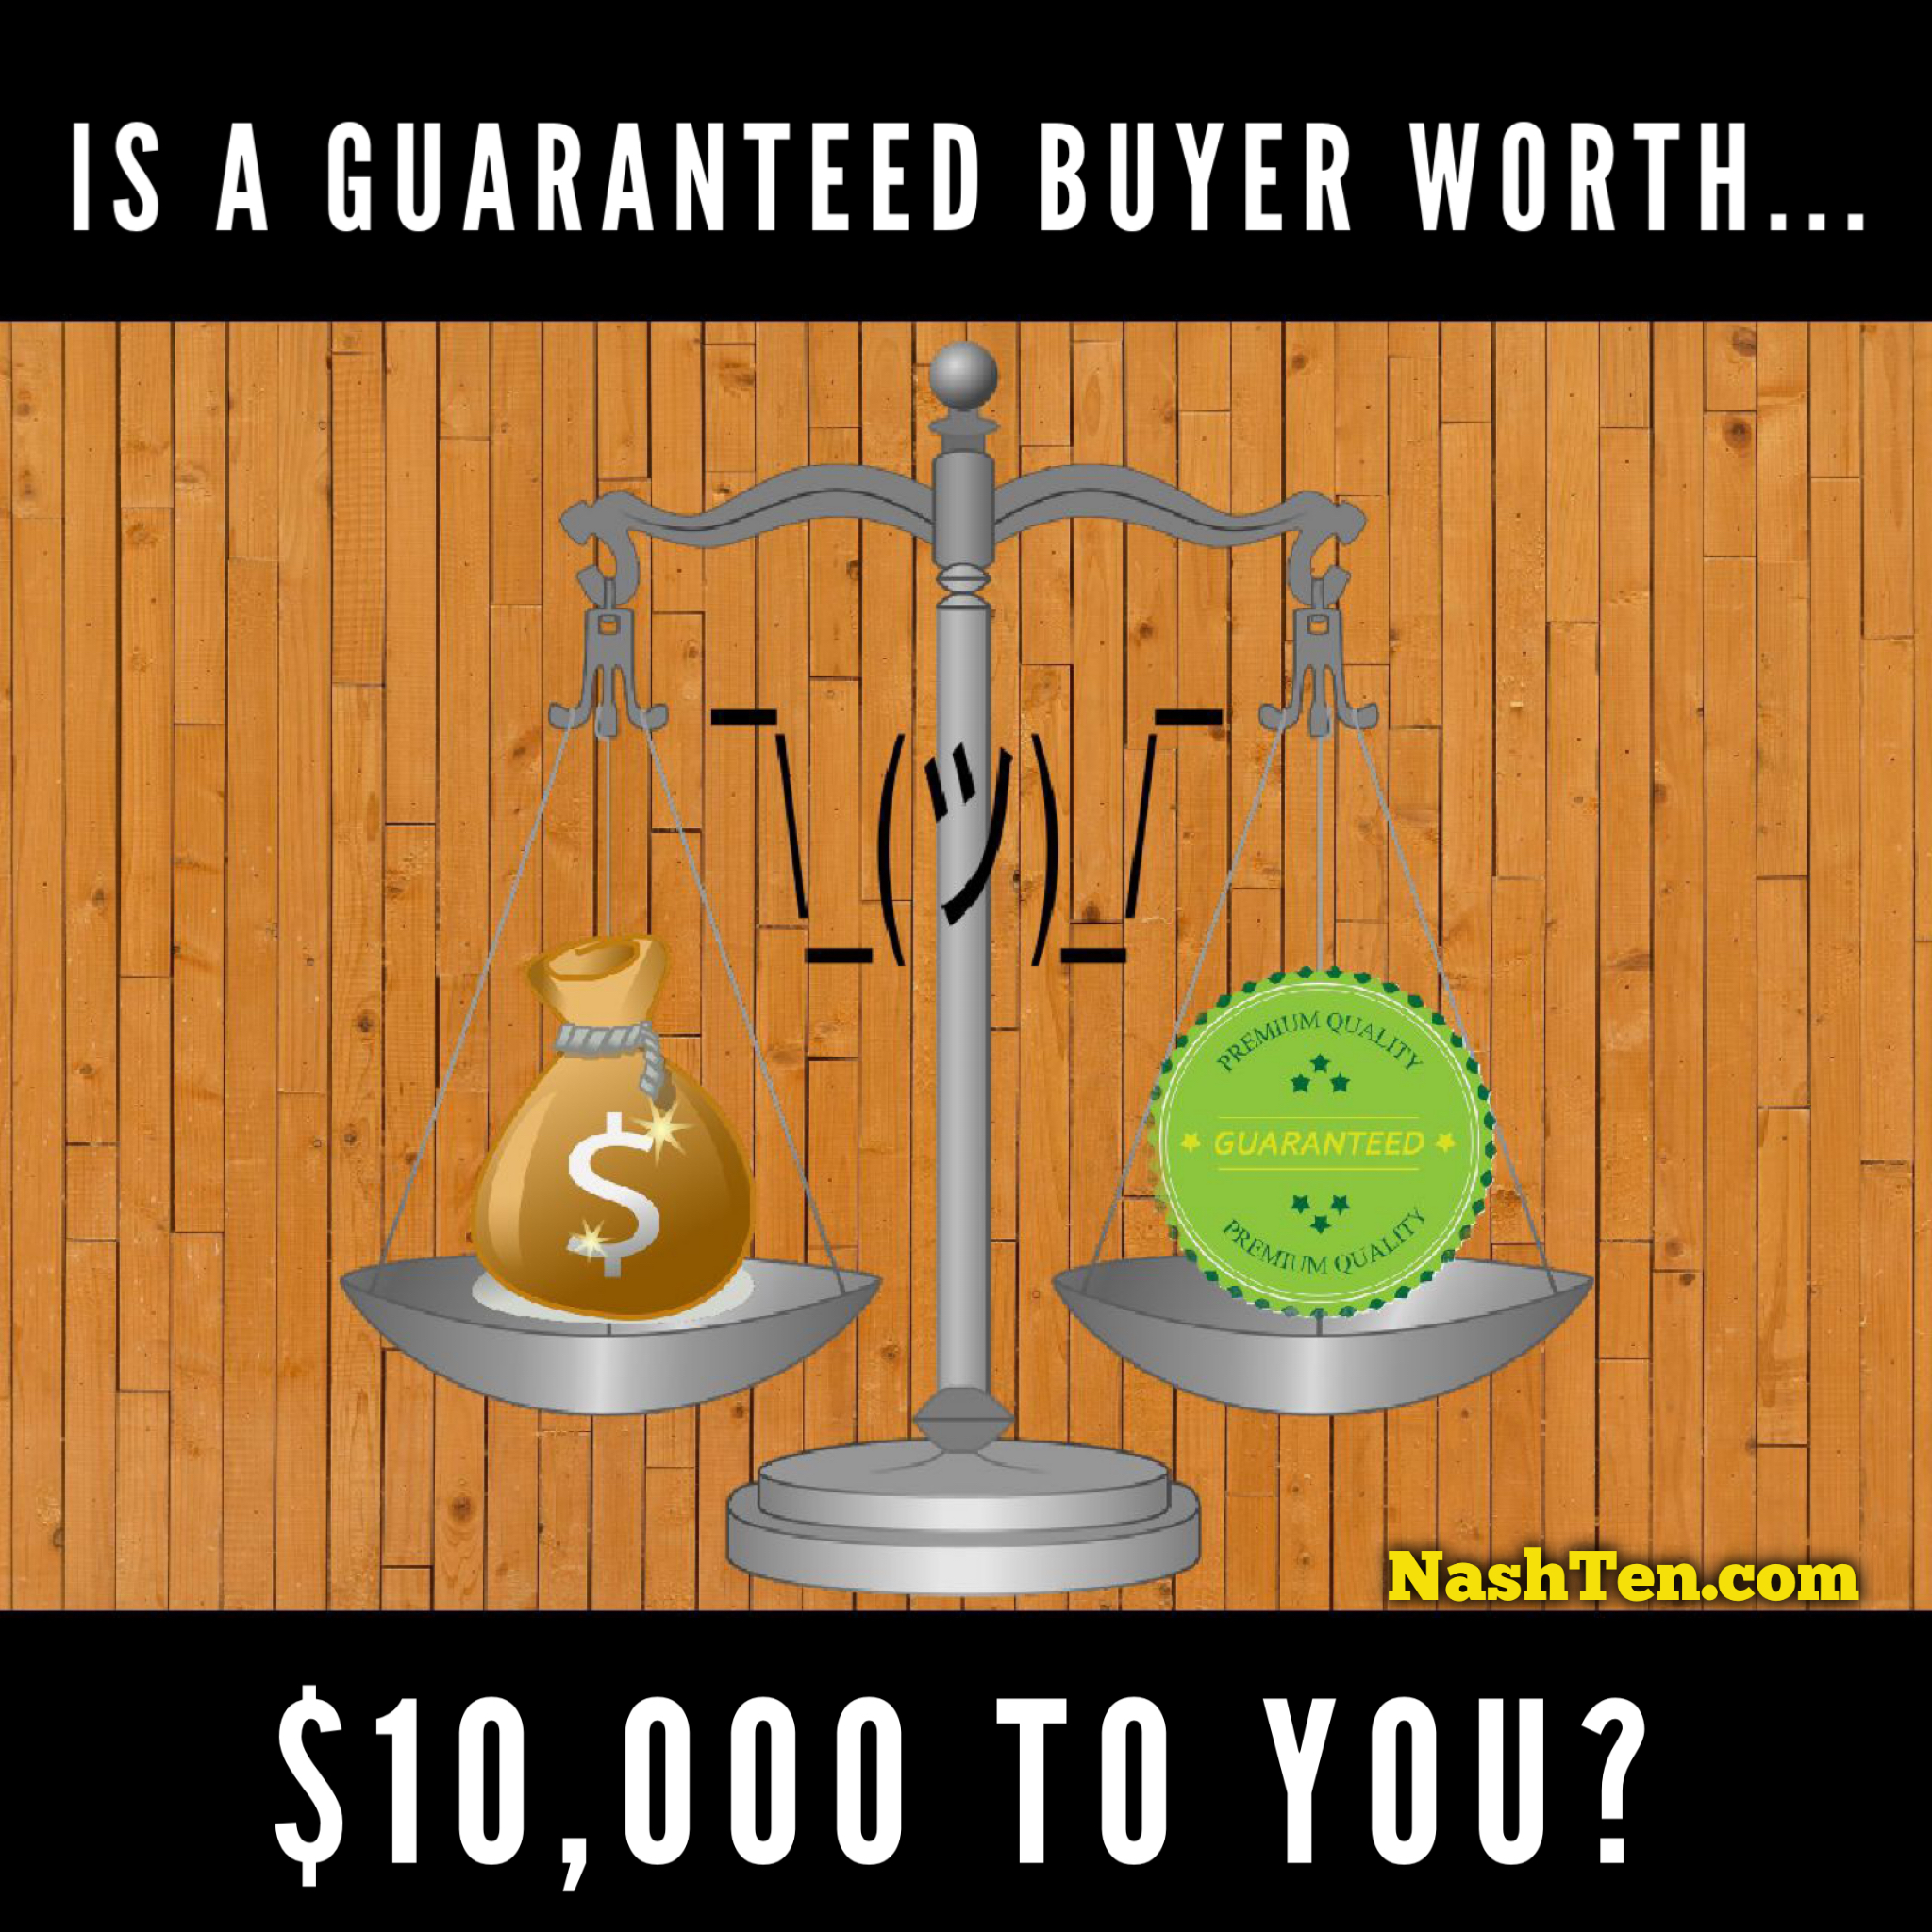 Would you pay $10,000 for a guaranteed buyer?